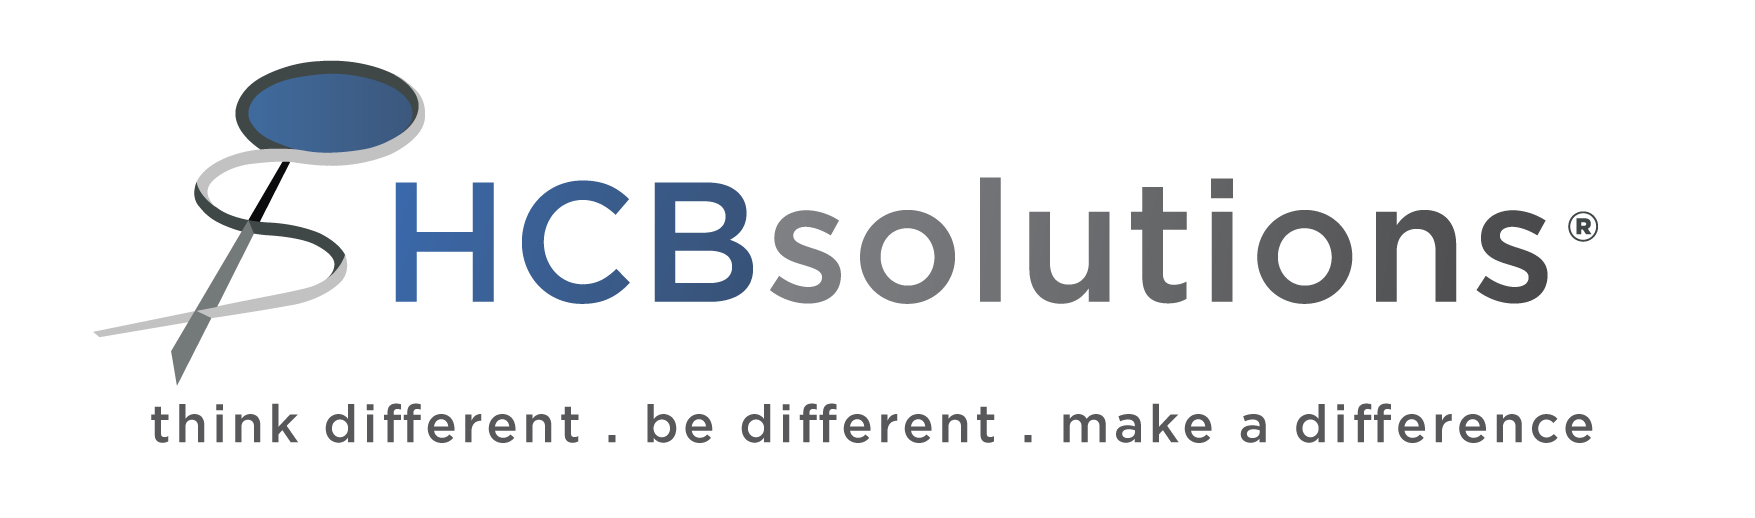 Human Capital Business Solutions | HCBsolutions